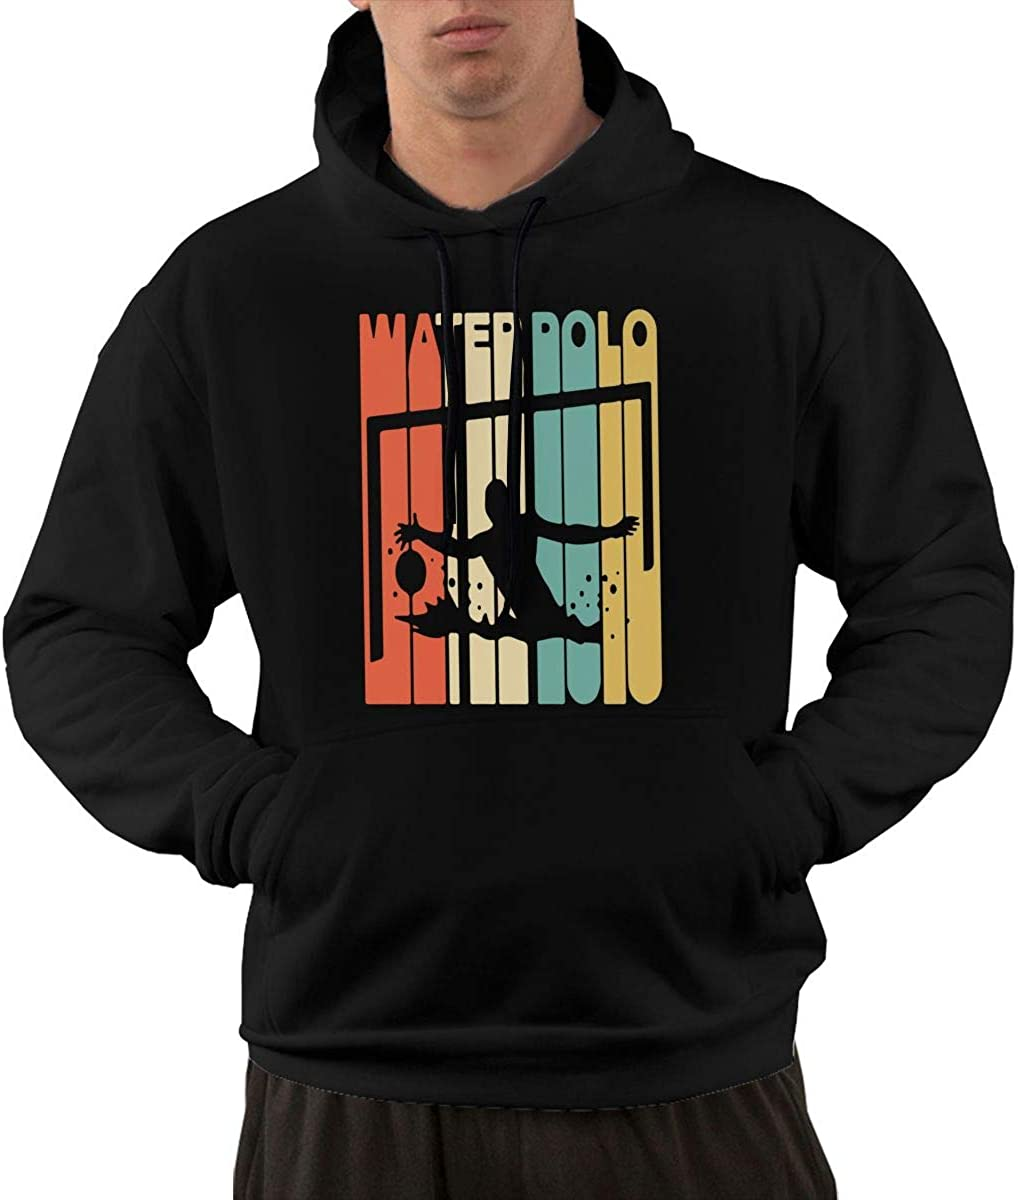 Mens Pullover Hoodie Sweater with Pockets Vintage Retro Style Water Polo